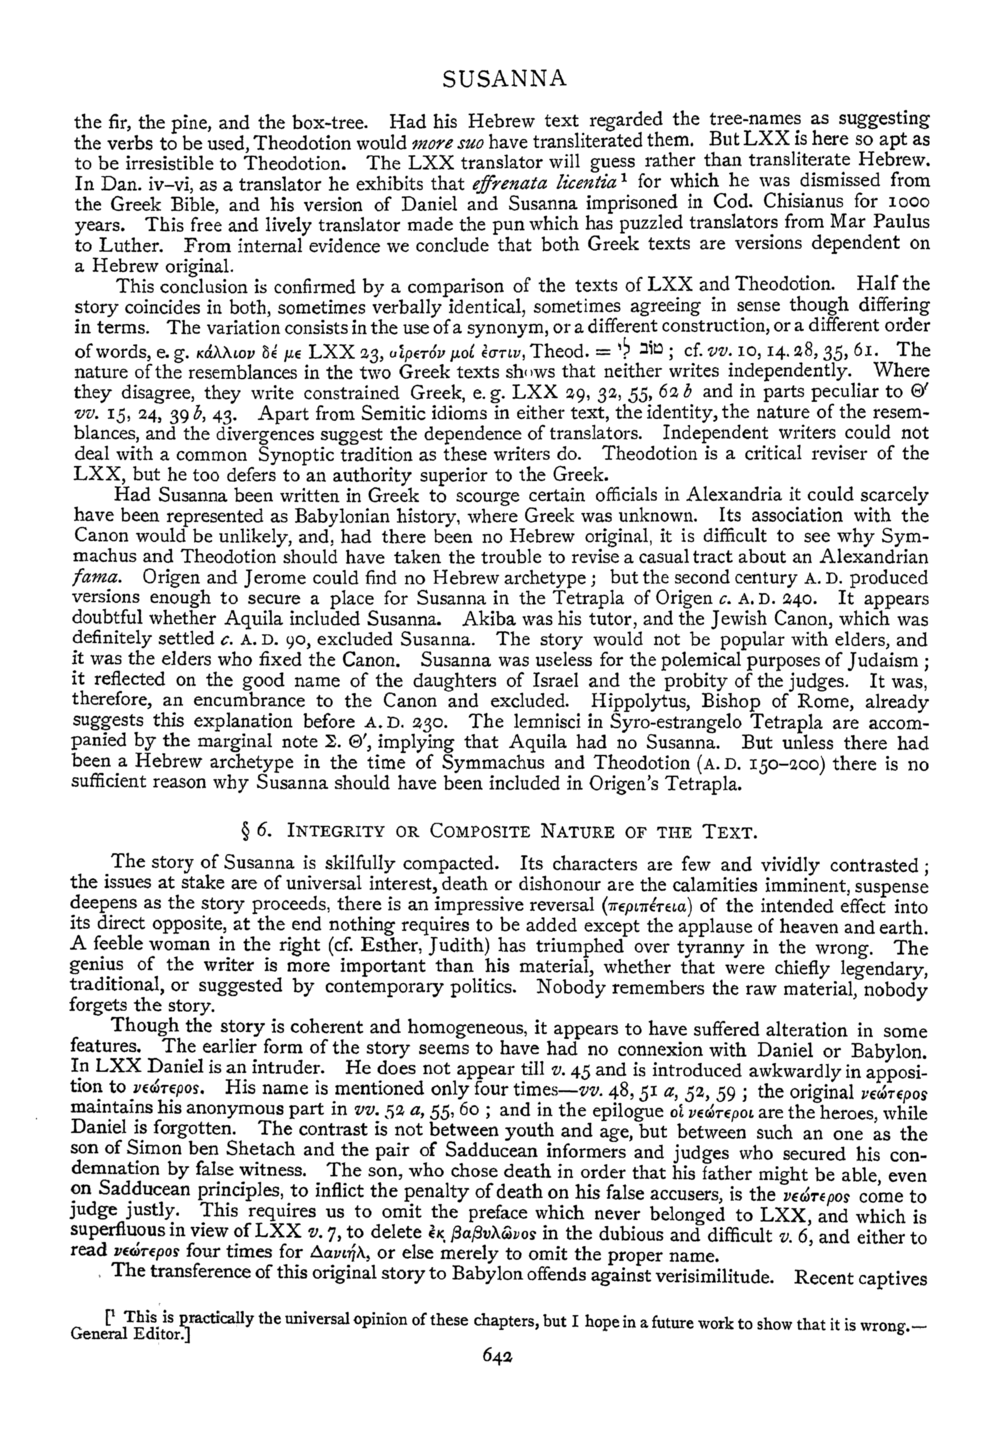 Image of page 642